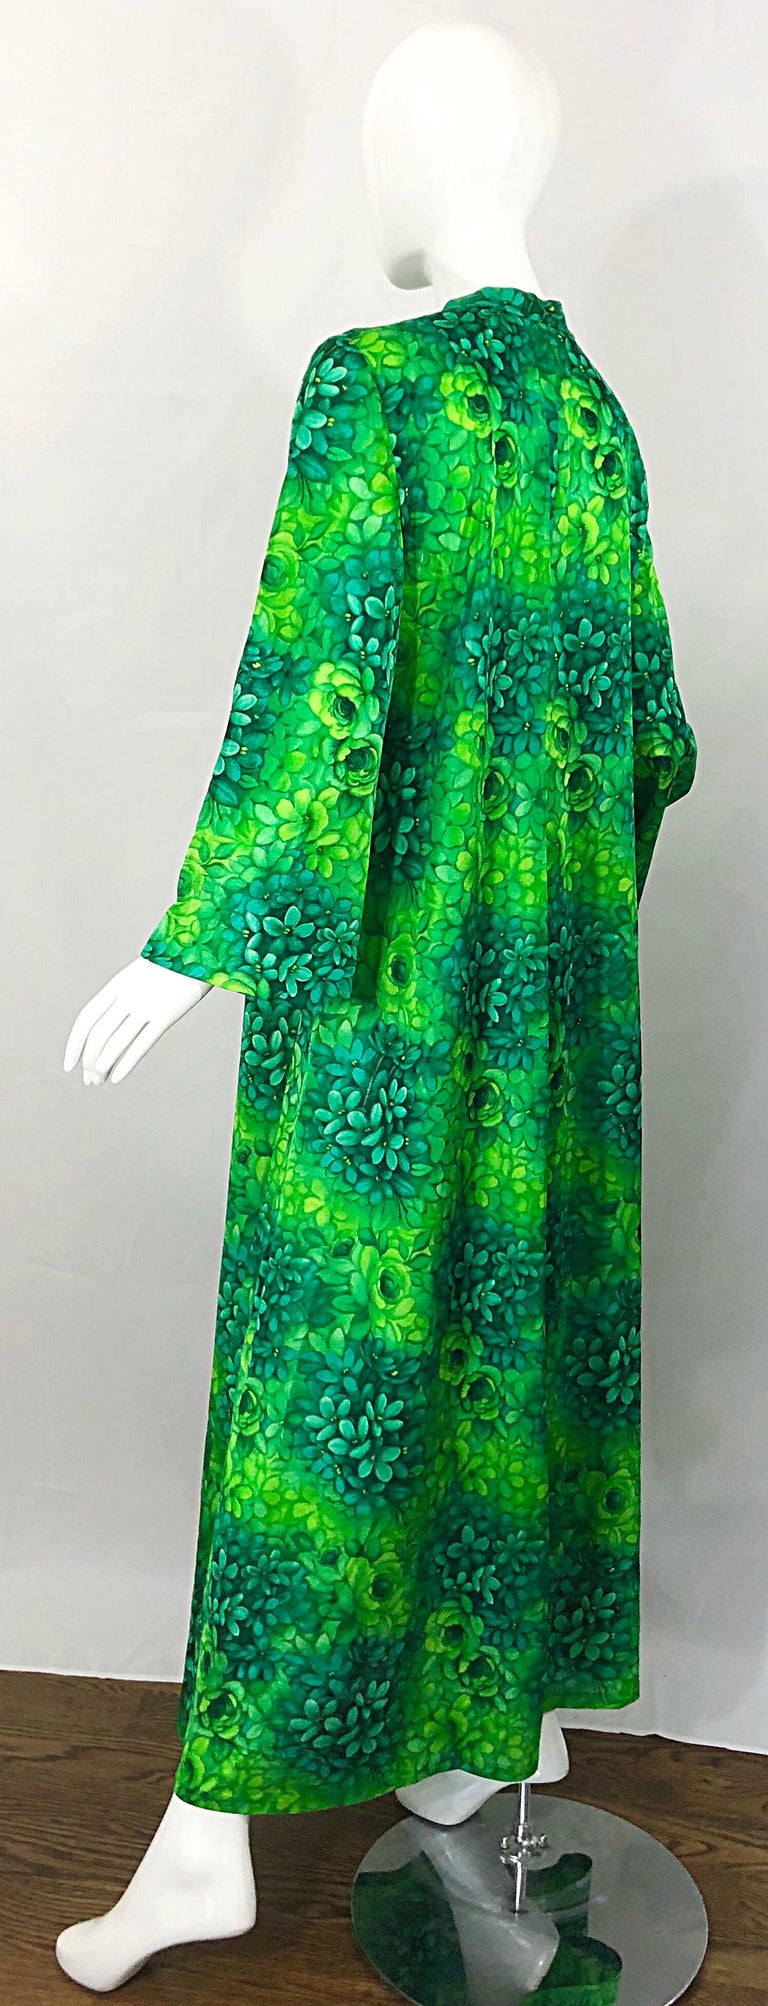 Amazing 1970s Neon + Kelly Green Abstract Flower Print 70s Vintage Caftan Dress For Sale 9